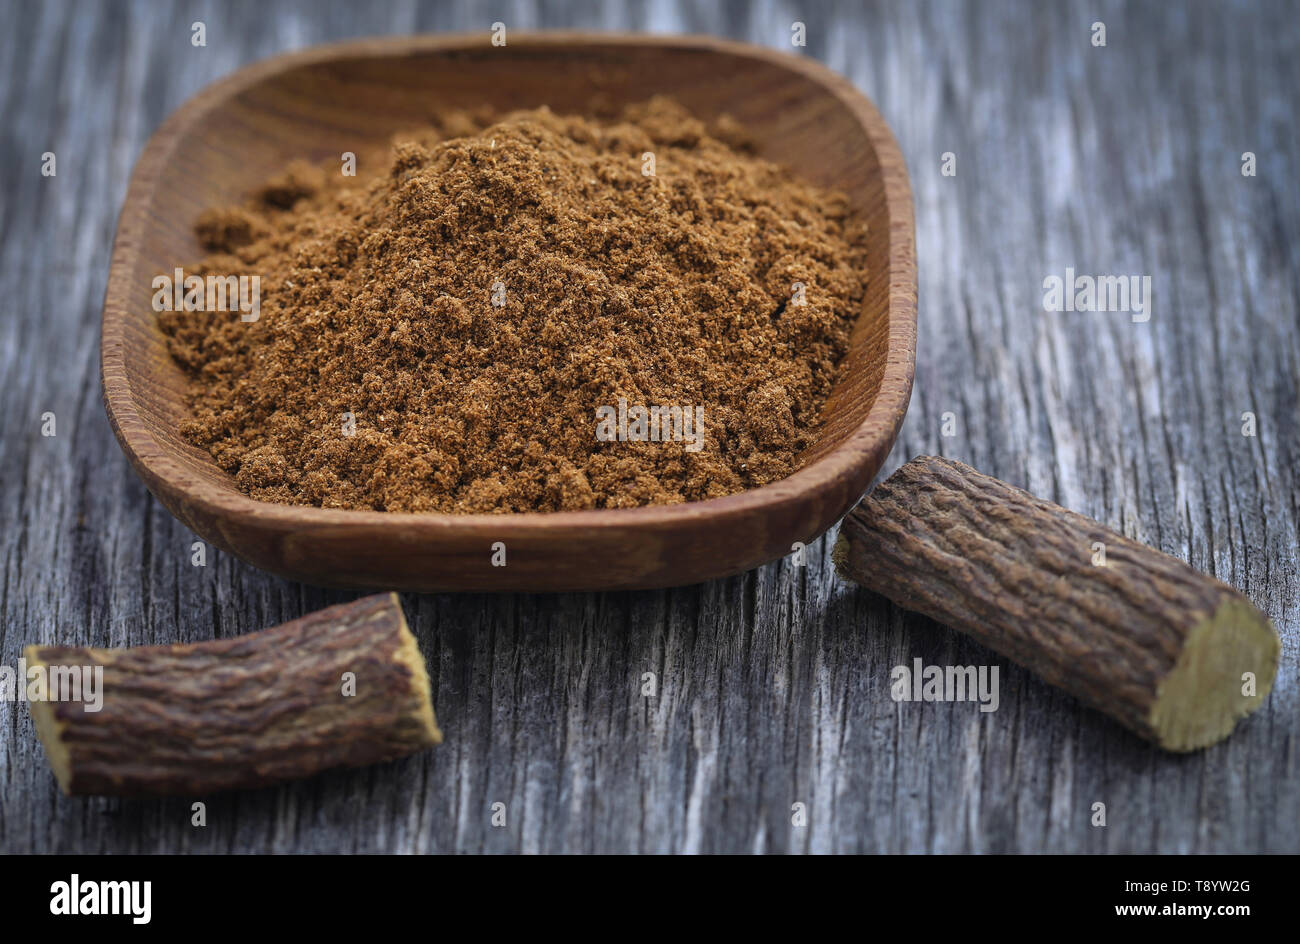 Liquorice stick and ground herbs in wooden bowl on textured surface - Stock Image